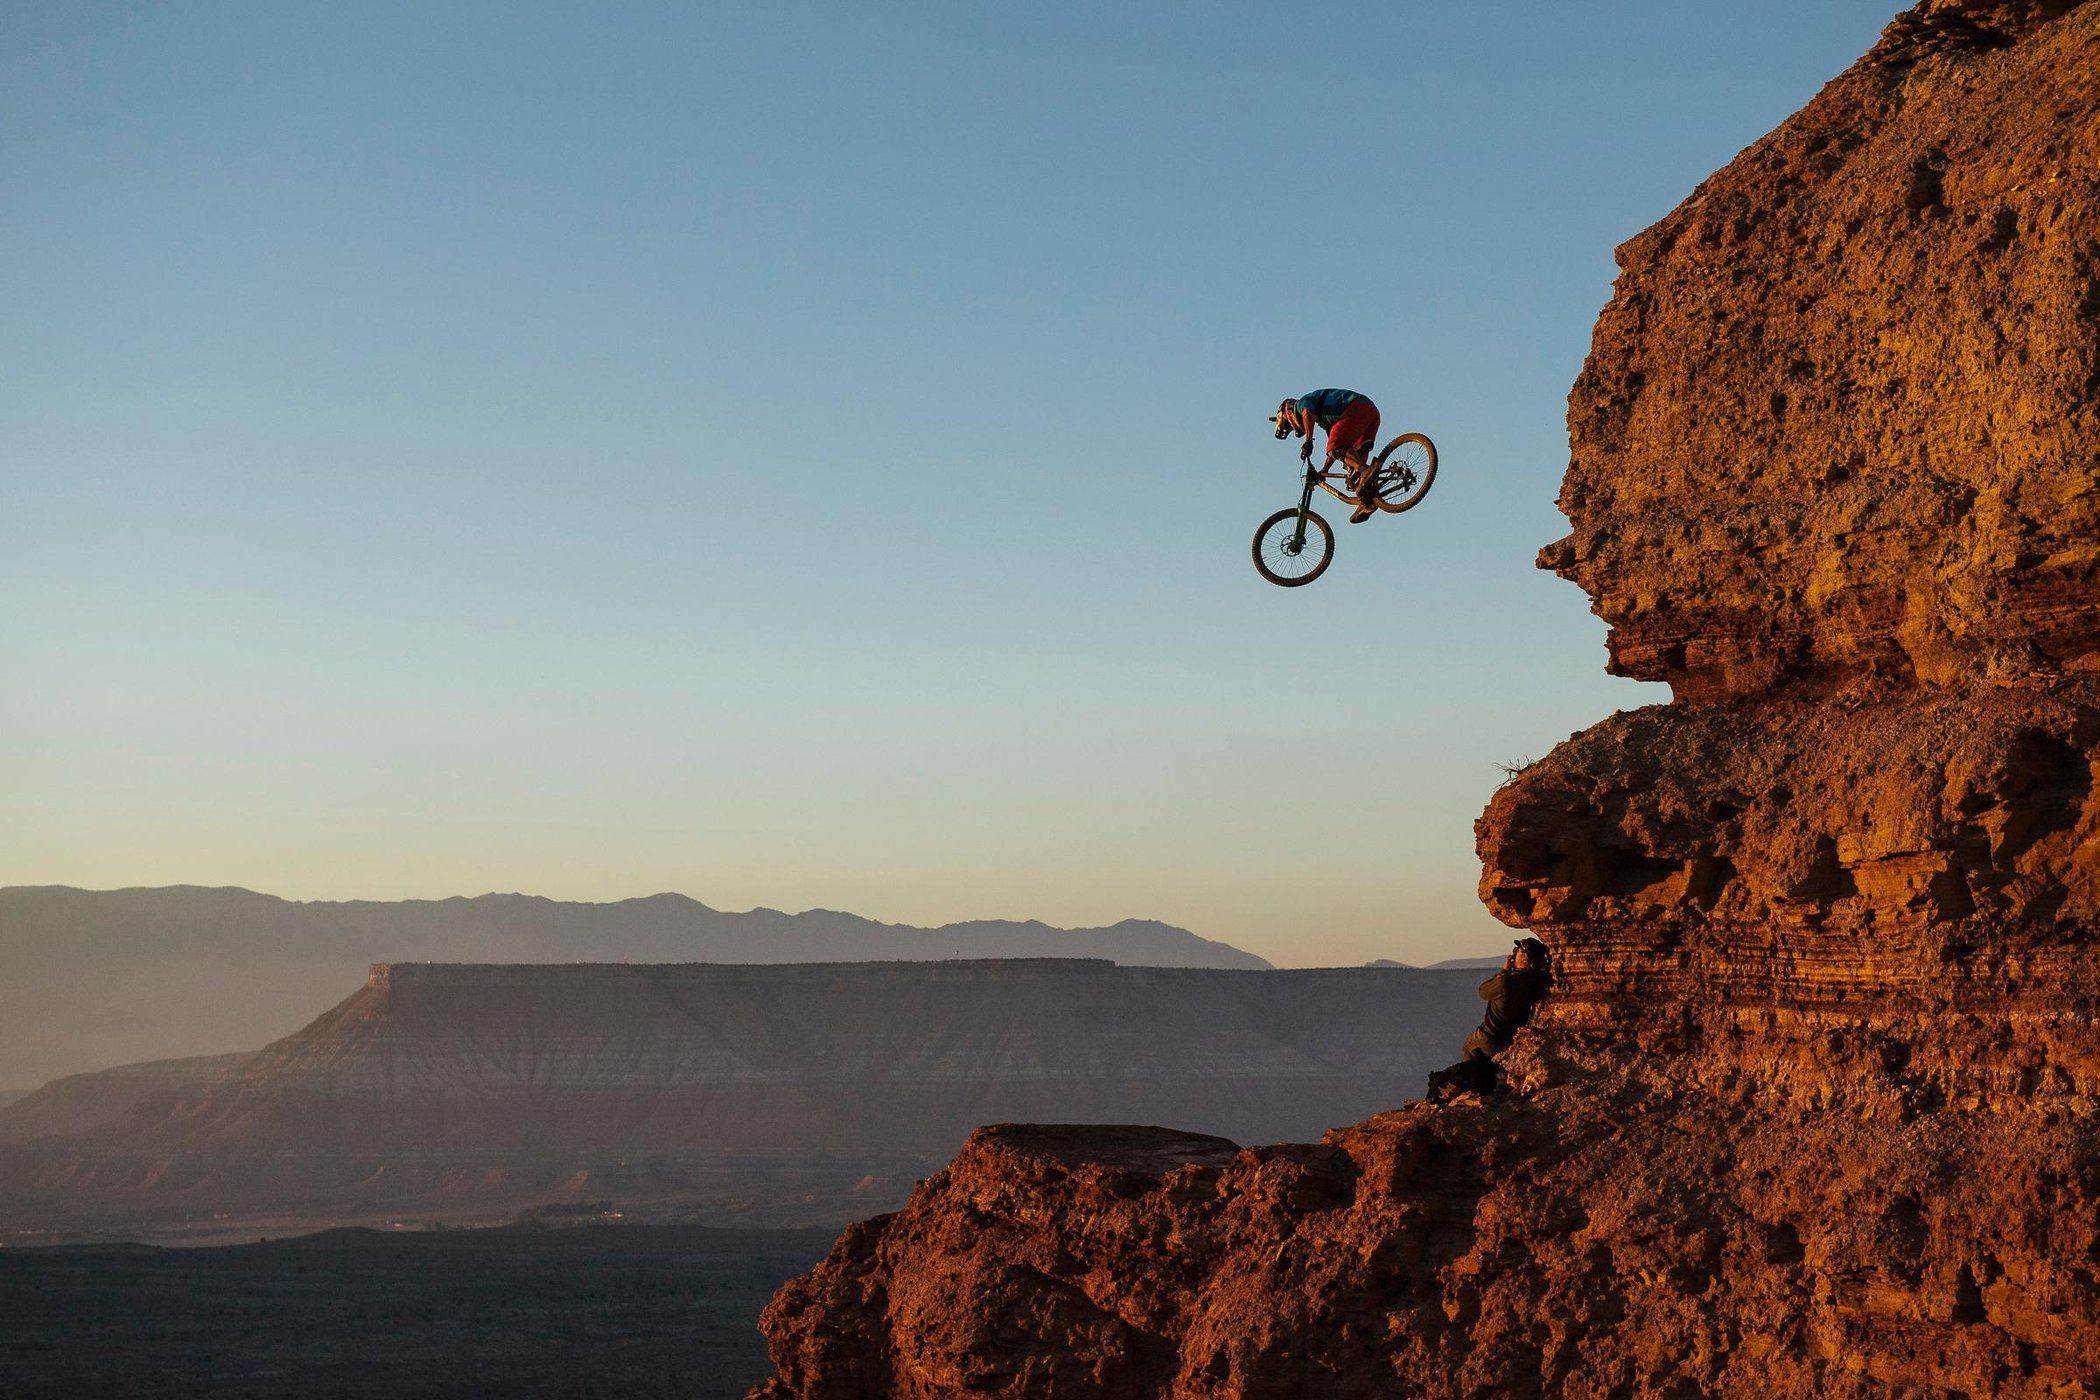 Spring 3d Live Wallpaper How To Watch Red Bull Rampage 2018 Mountain Biking Live